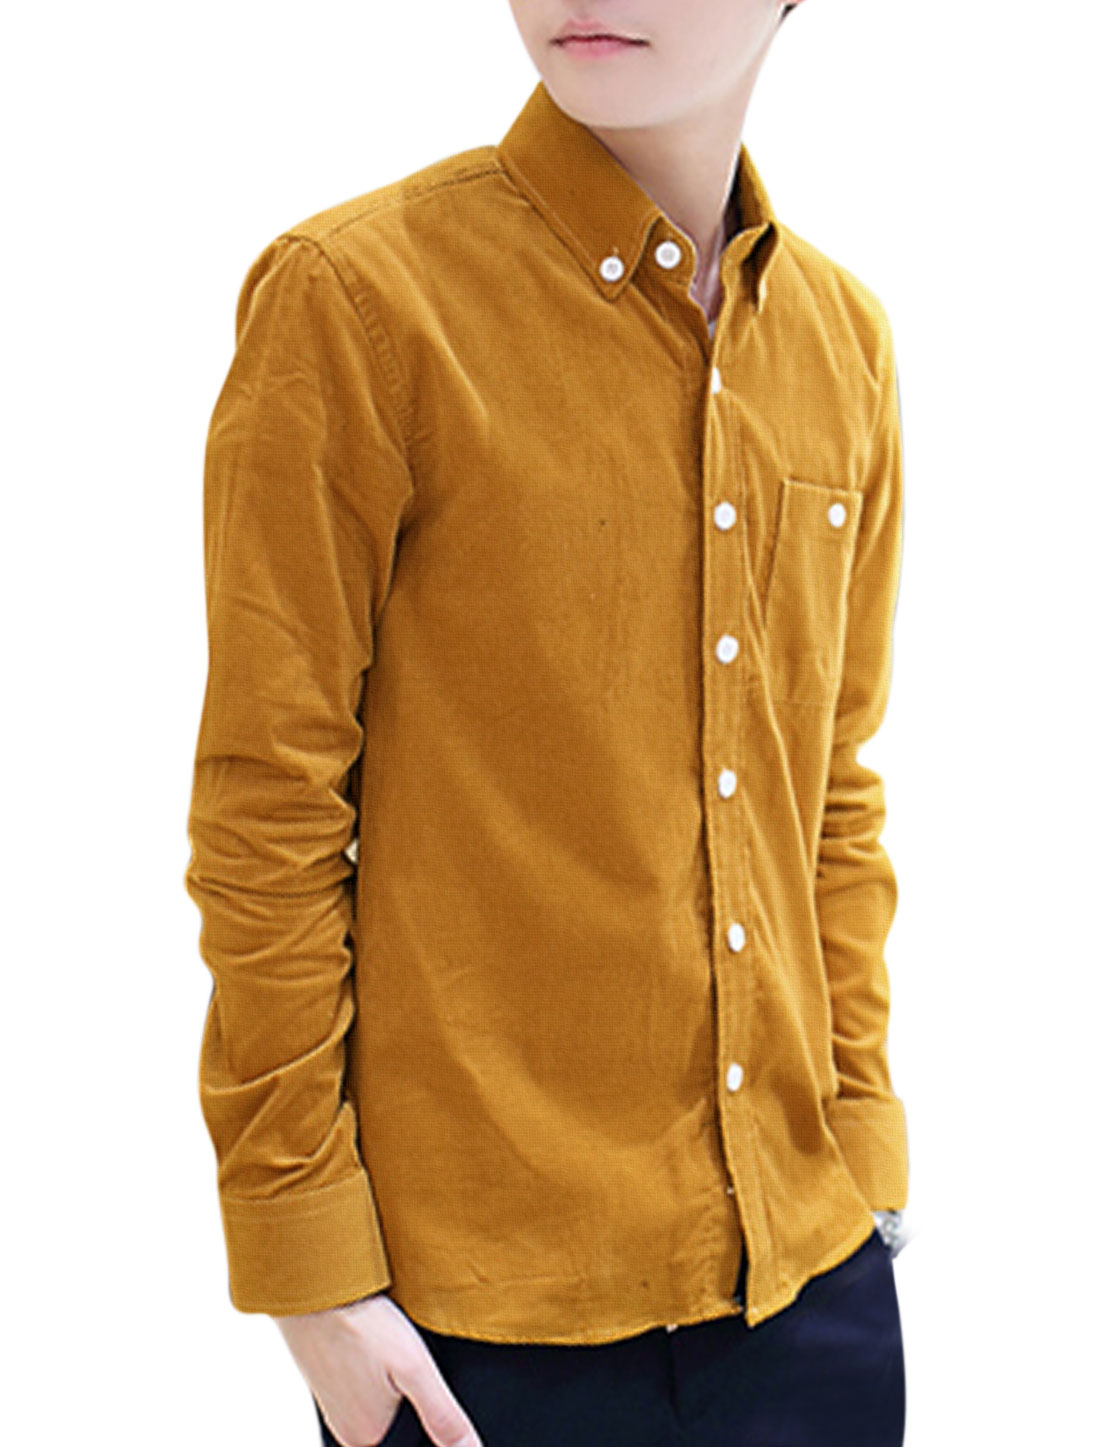 Men Point Collar Single Breasted Casual Corduroy Shirt Camel M